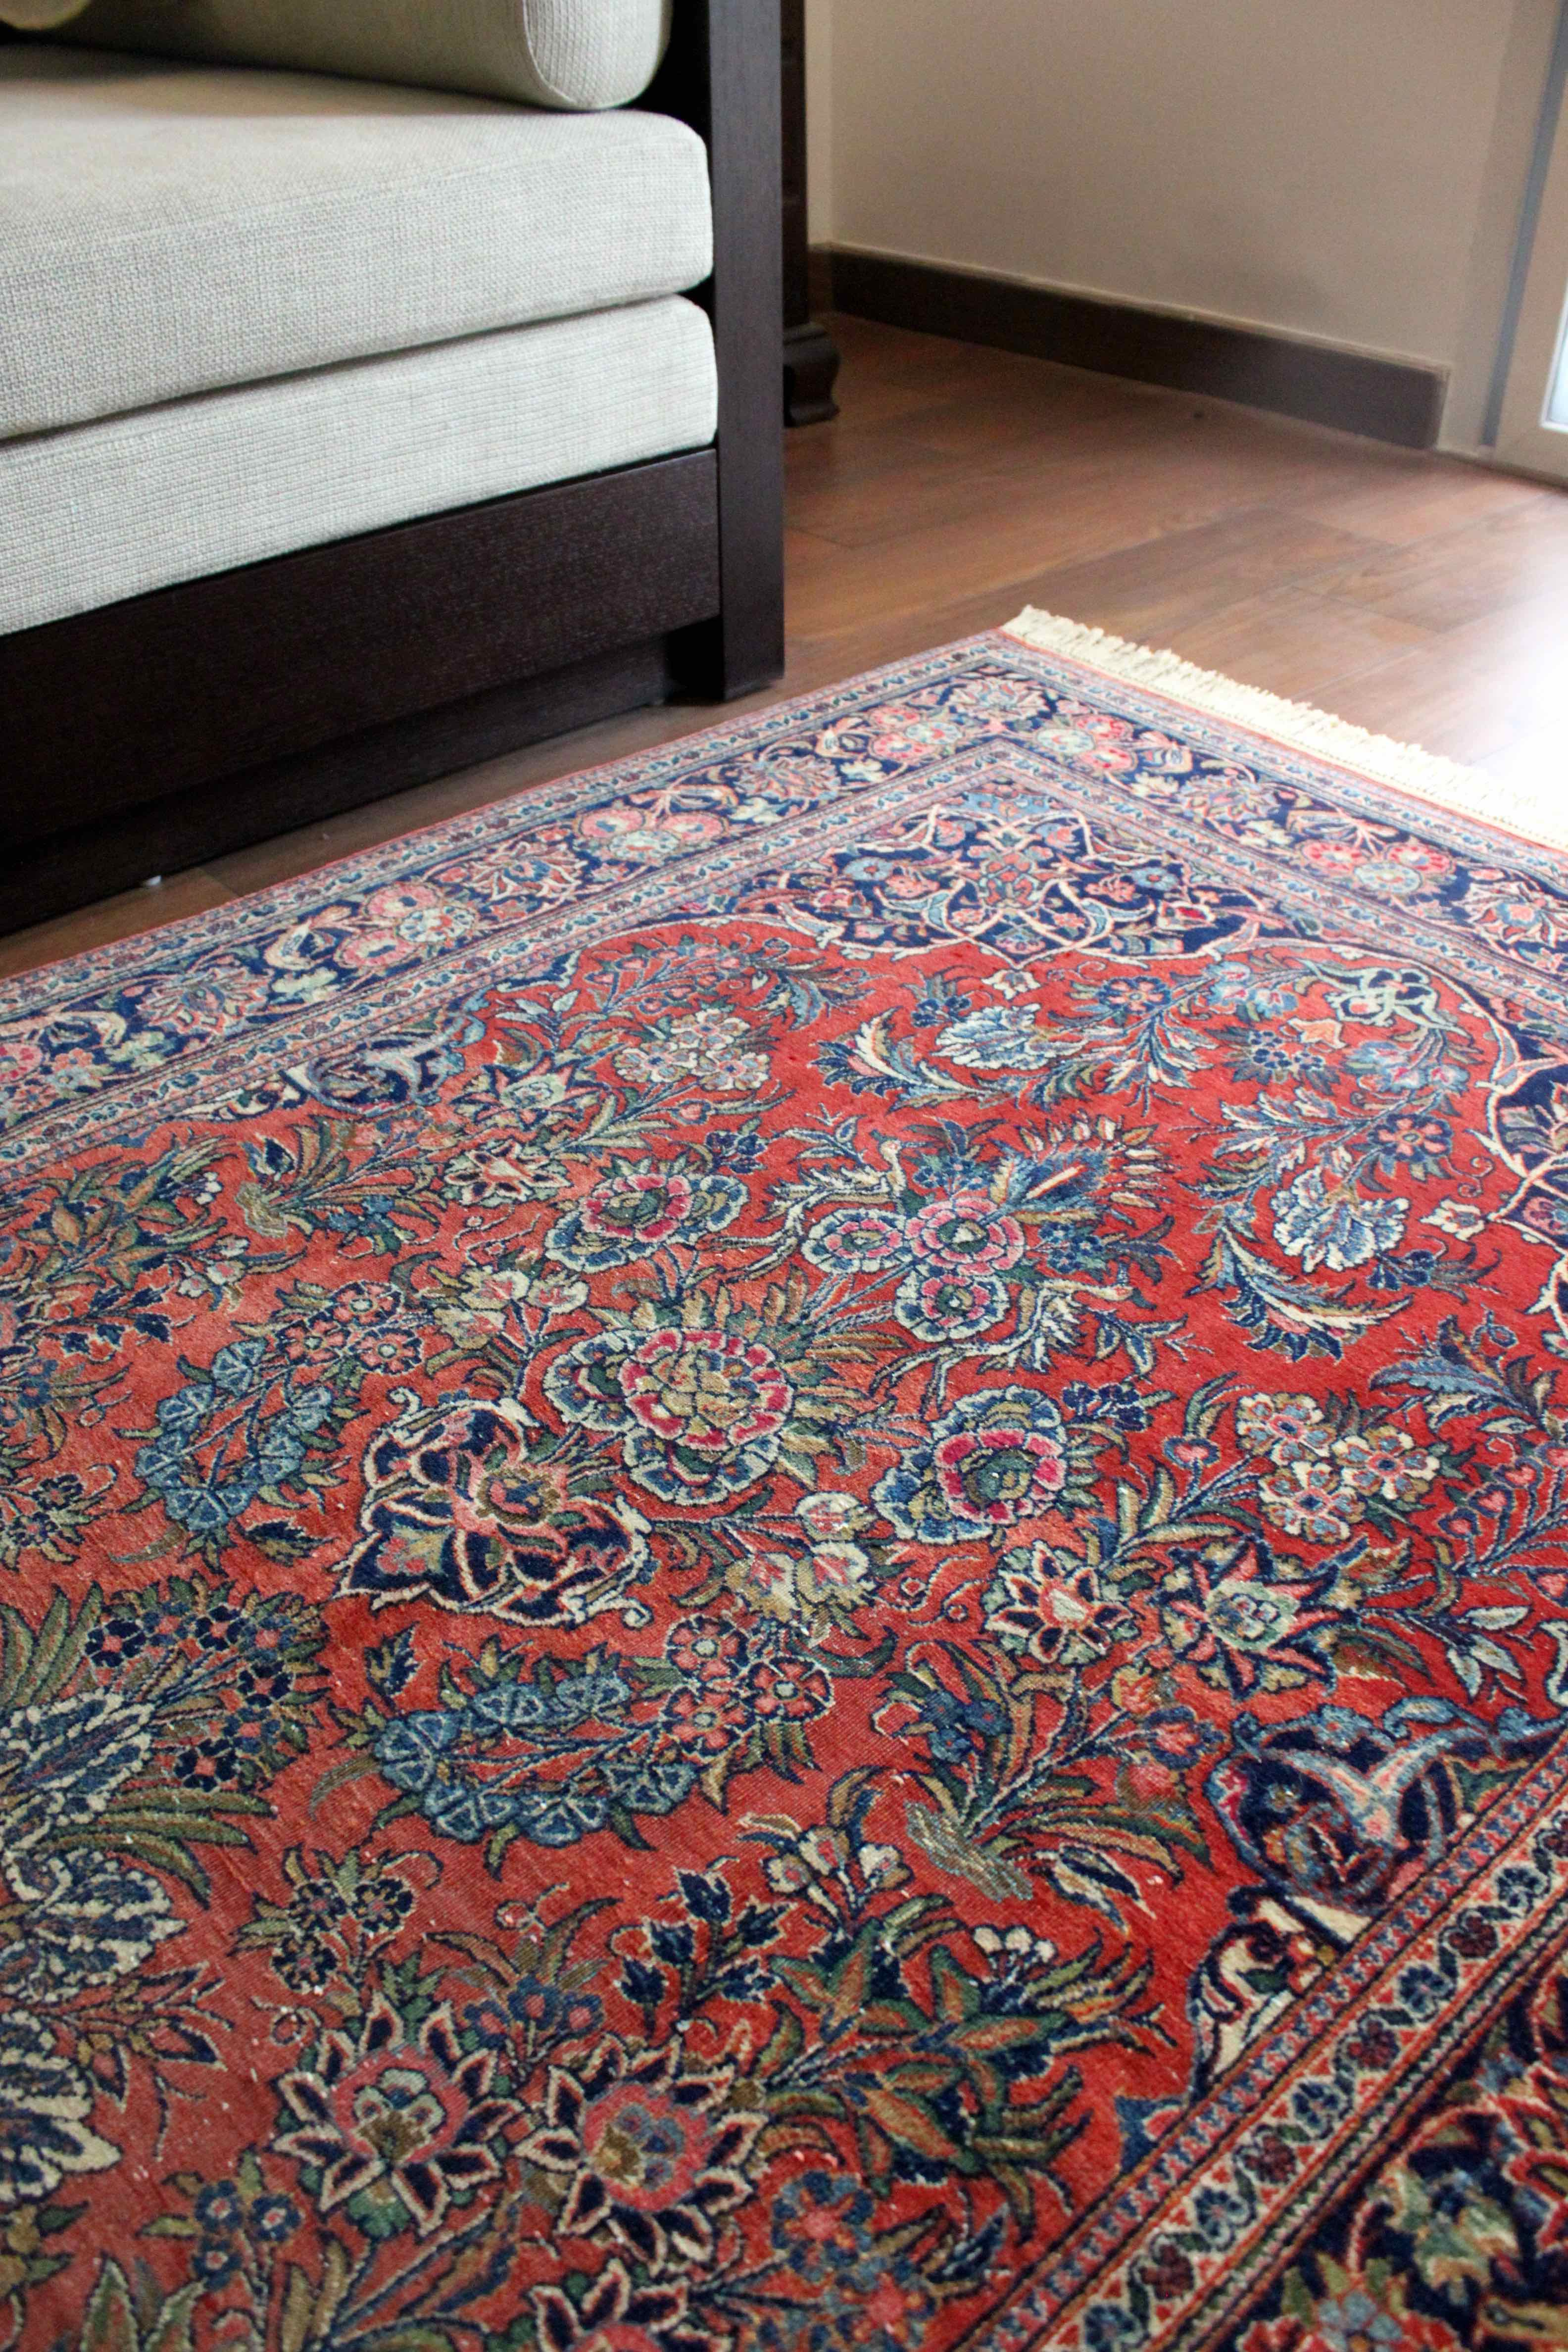 An intricately decorated Kashan rug illustrates the role of carpets as art throughout history